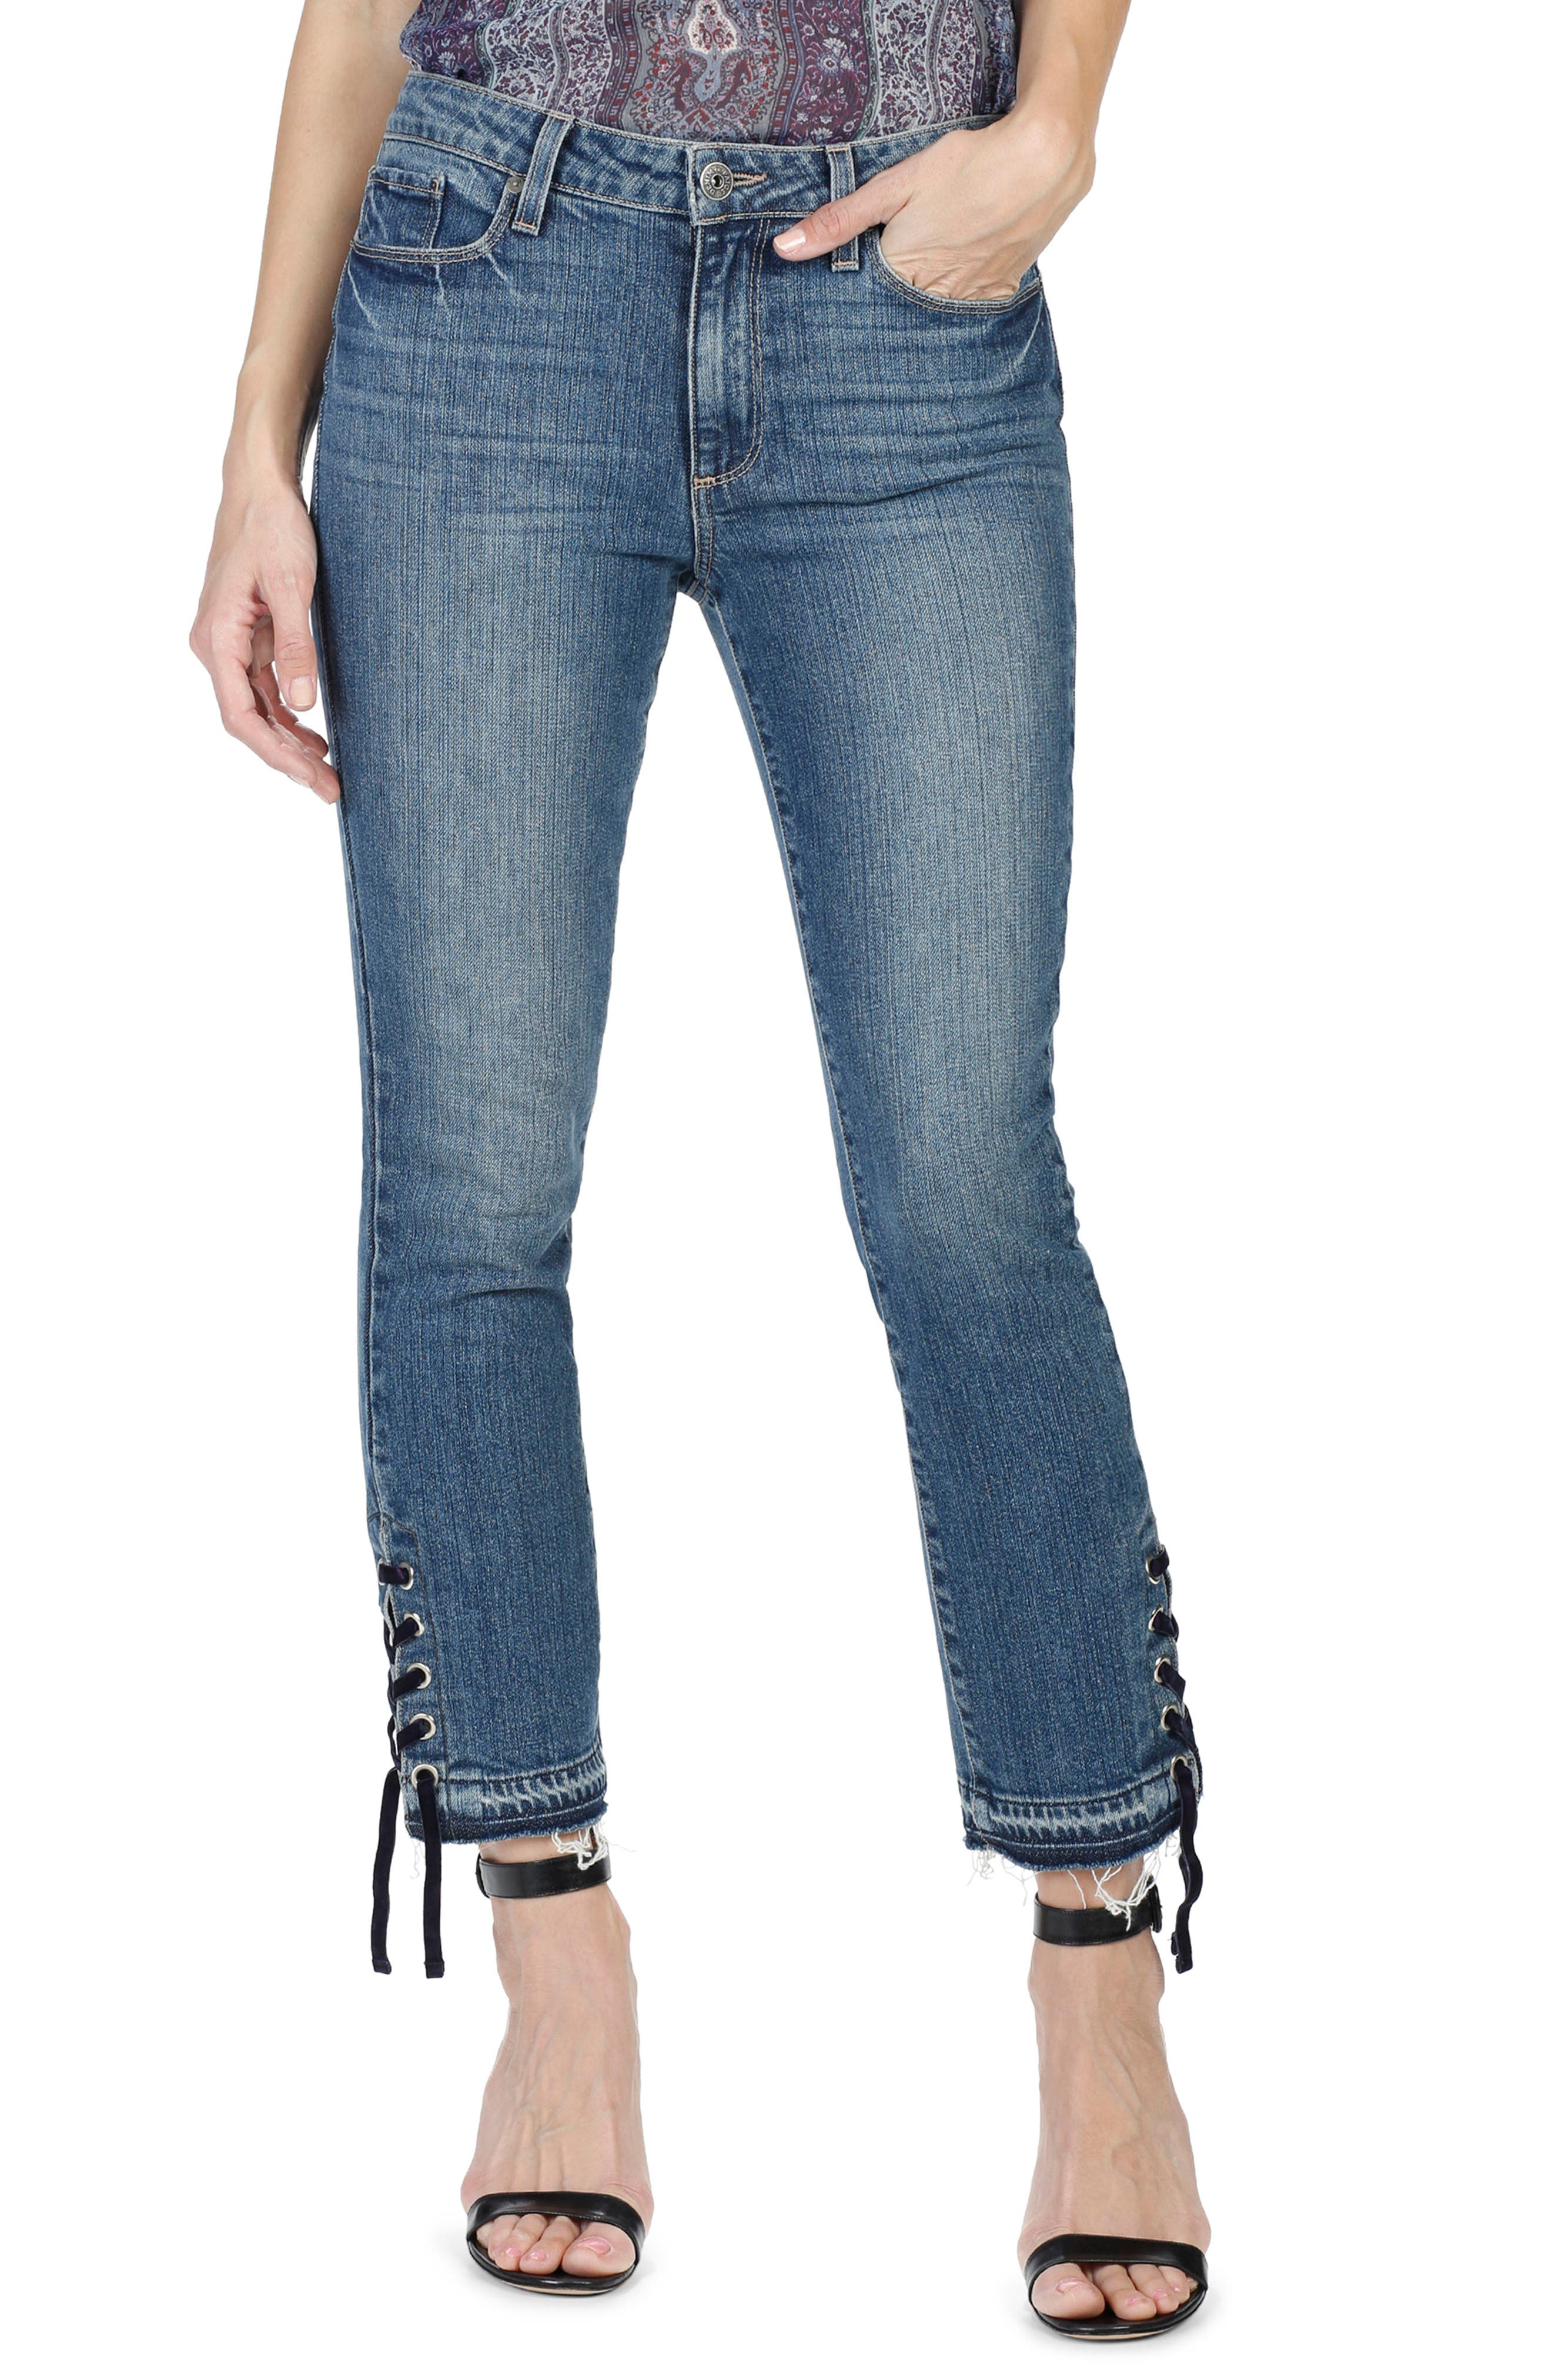 Alternate Image 1 Selected - PAIGE Jacqueline High Waist Straight Leg Jeans (Lacey Indigo)